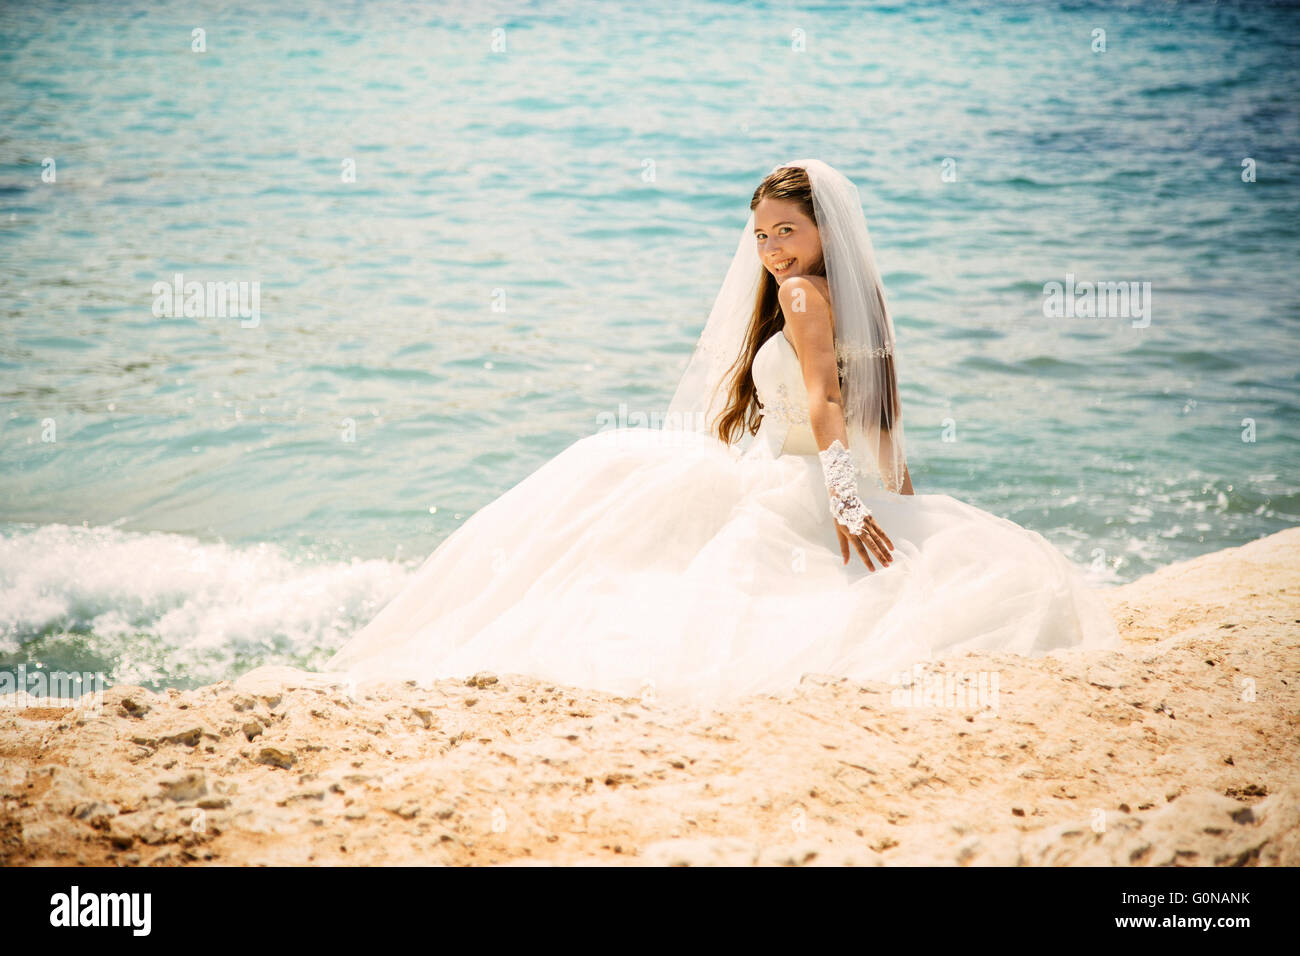 Wedding Dress Train Stockfotos & Wedding Dress Train Bilder - Alamy